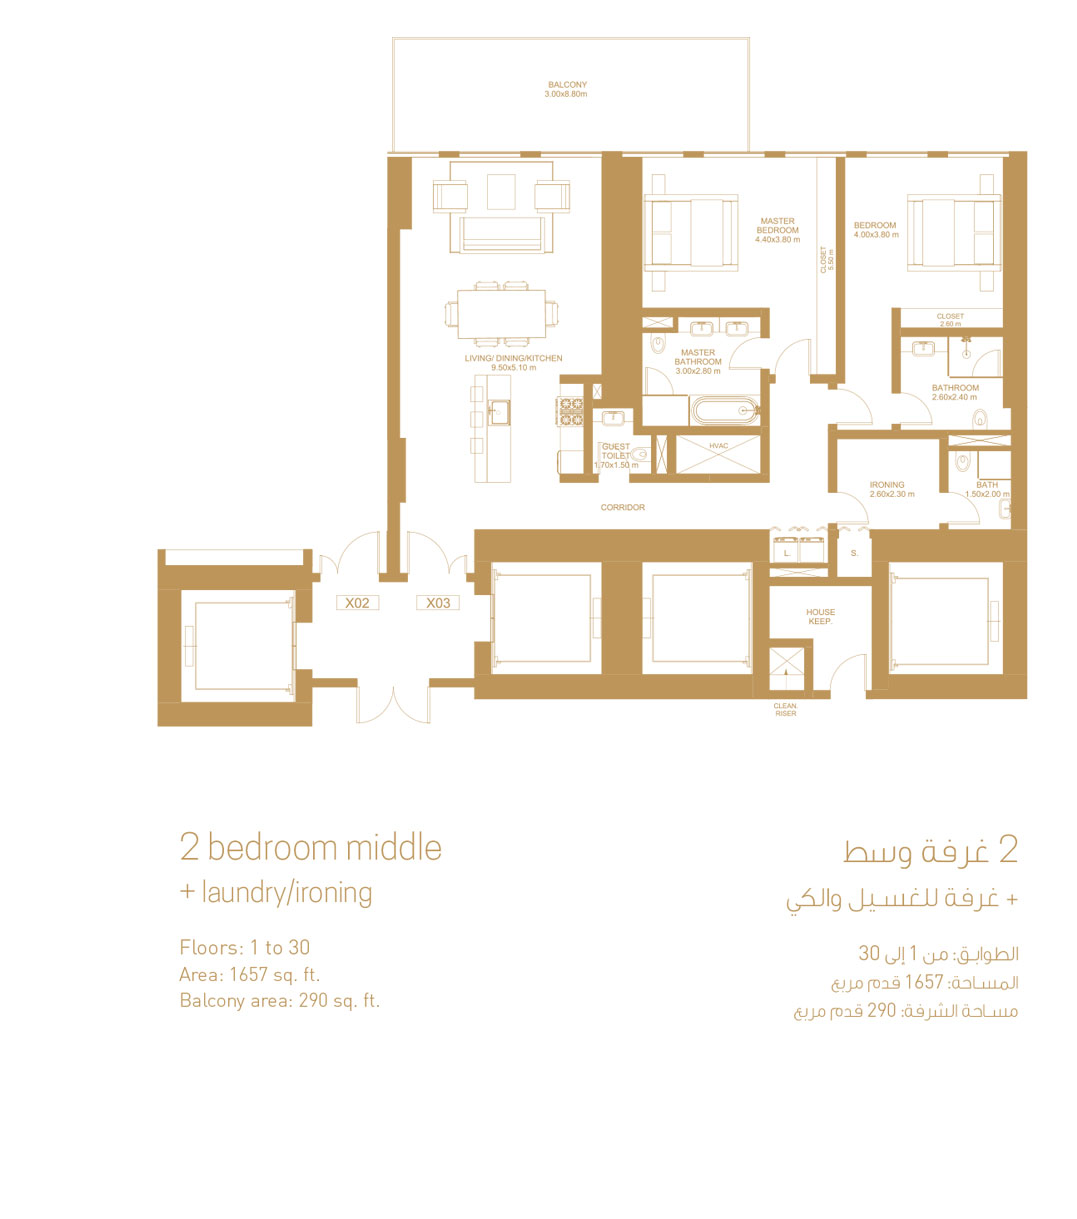 2 BHK Middle